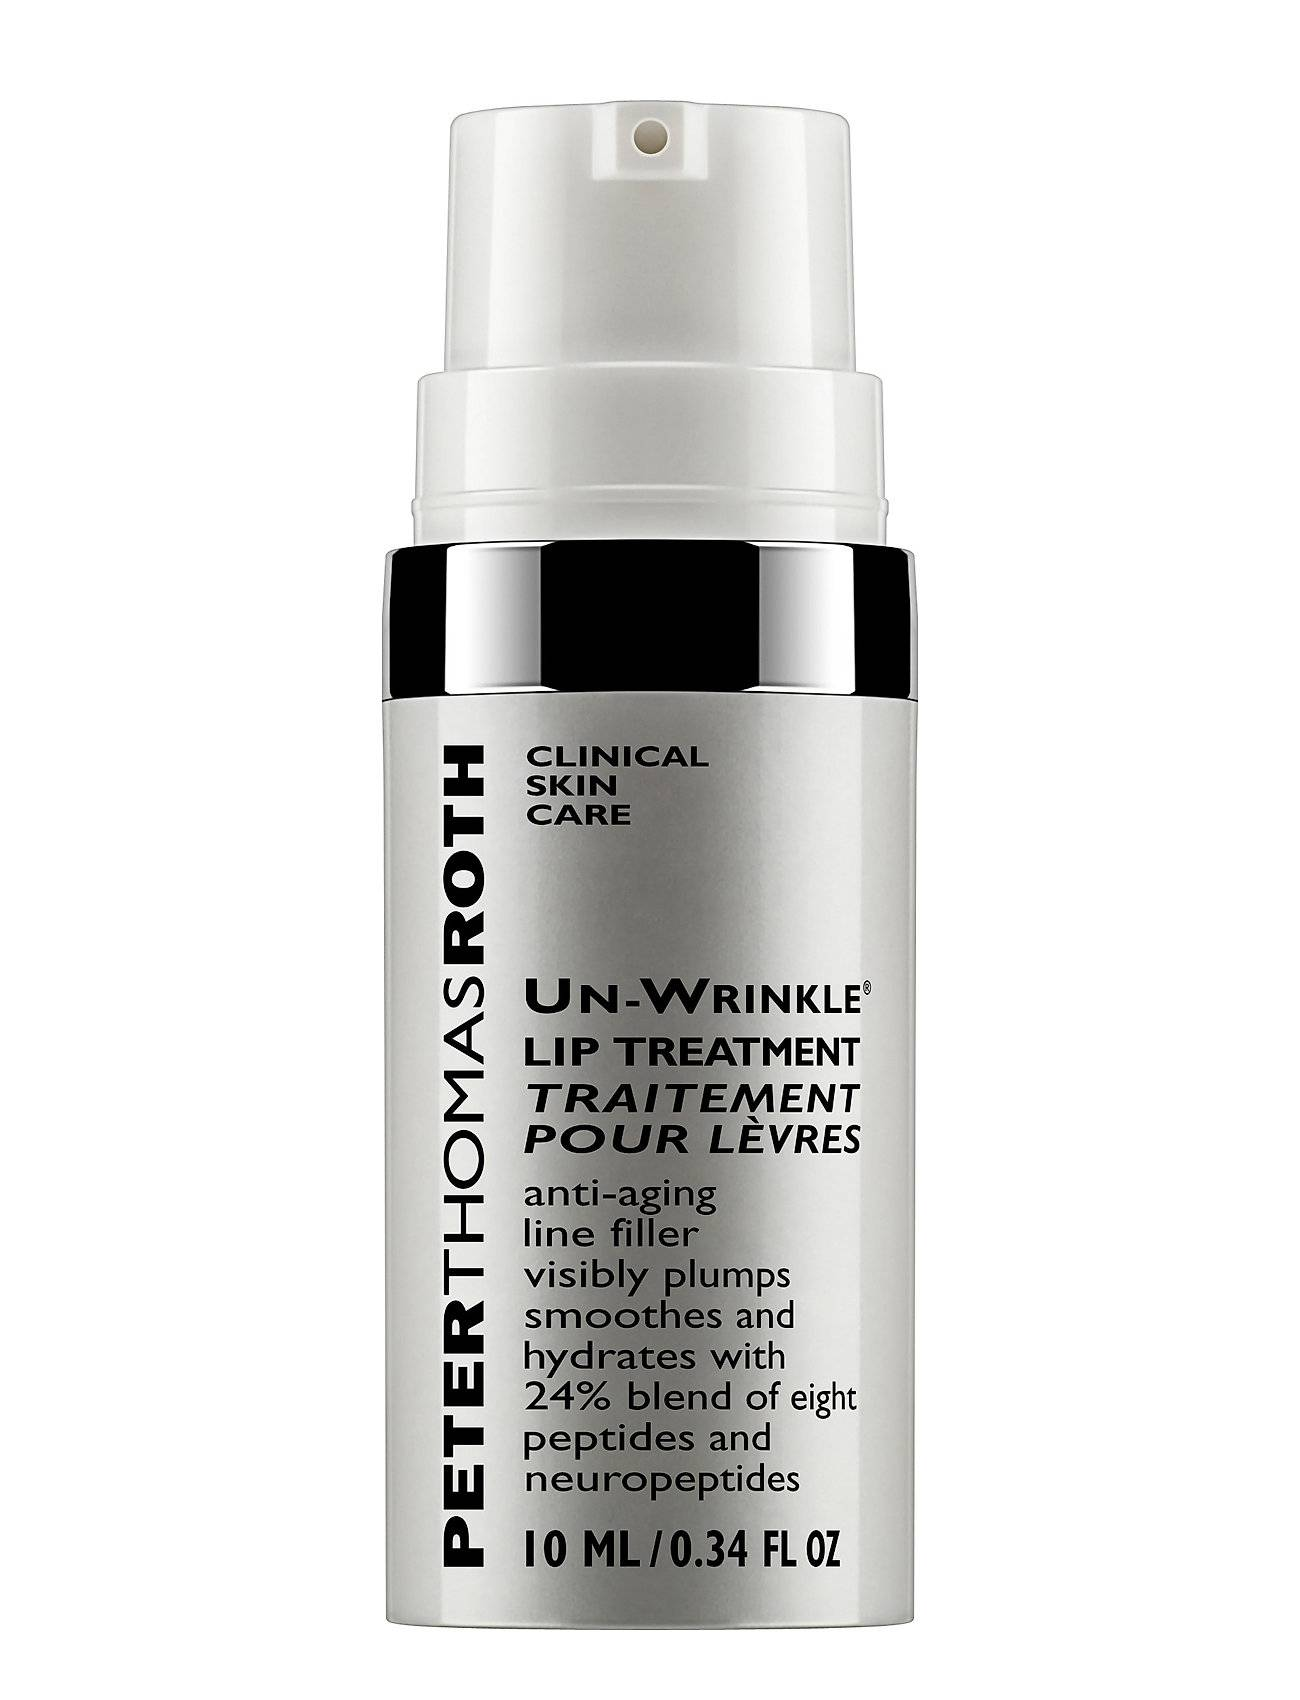 Image of Roth Un-Wrinkle Lip Treatment Huultenhoito Nude Peter Thomas Roth